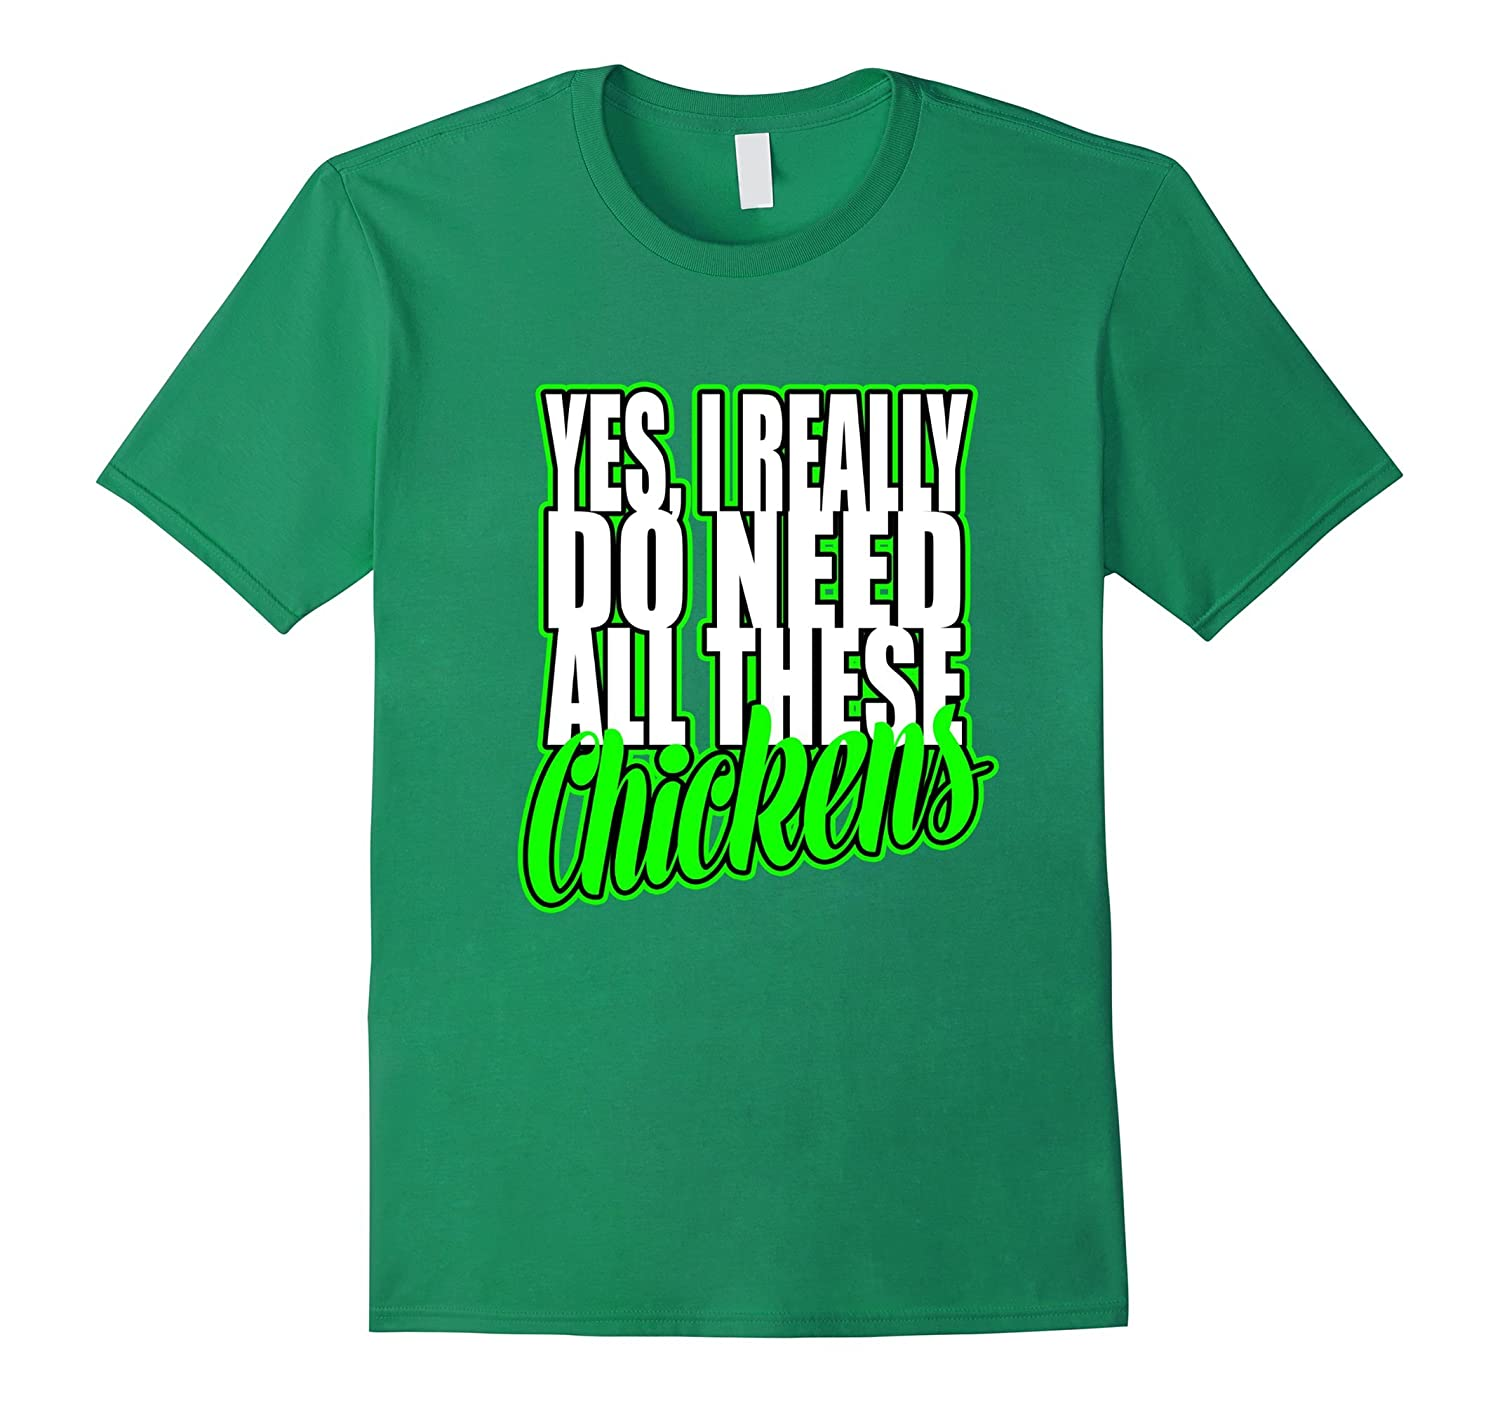 Yes, I Really Do Need All These Chickens – Funny T-Shirt-Teevkd